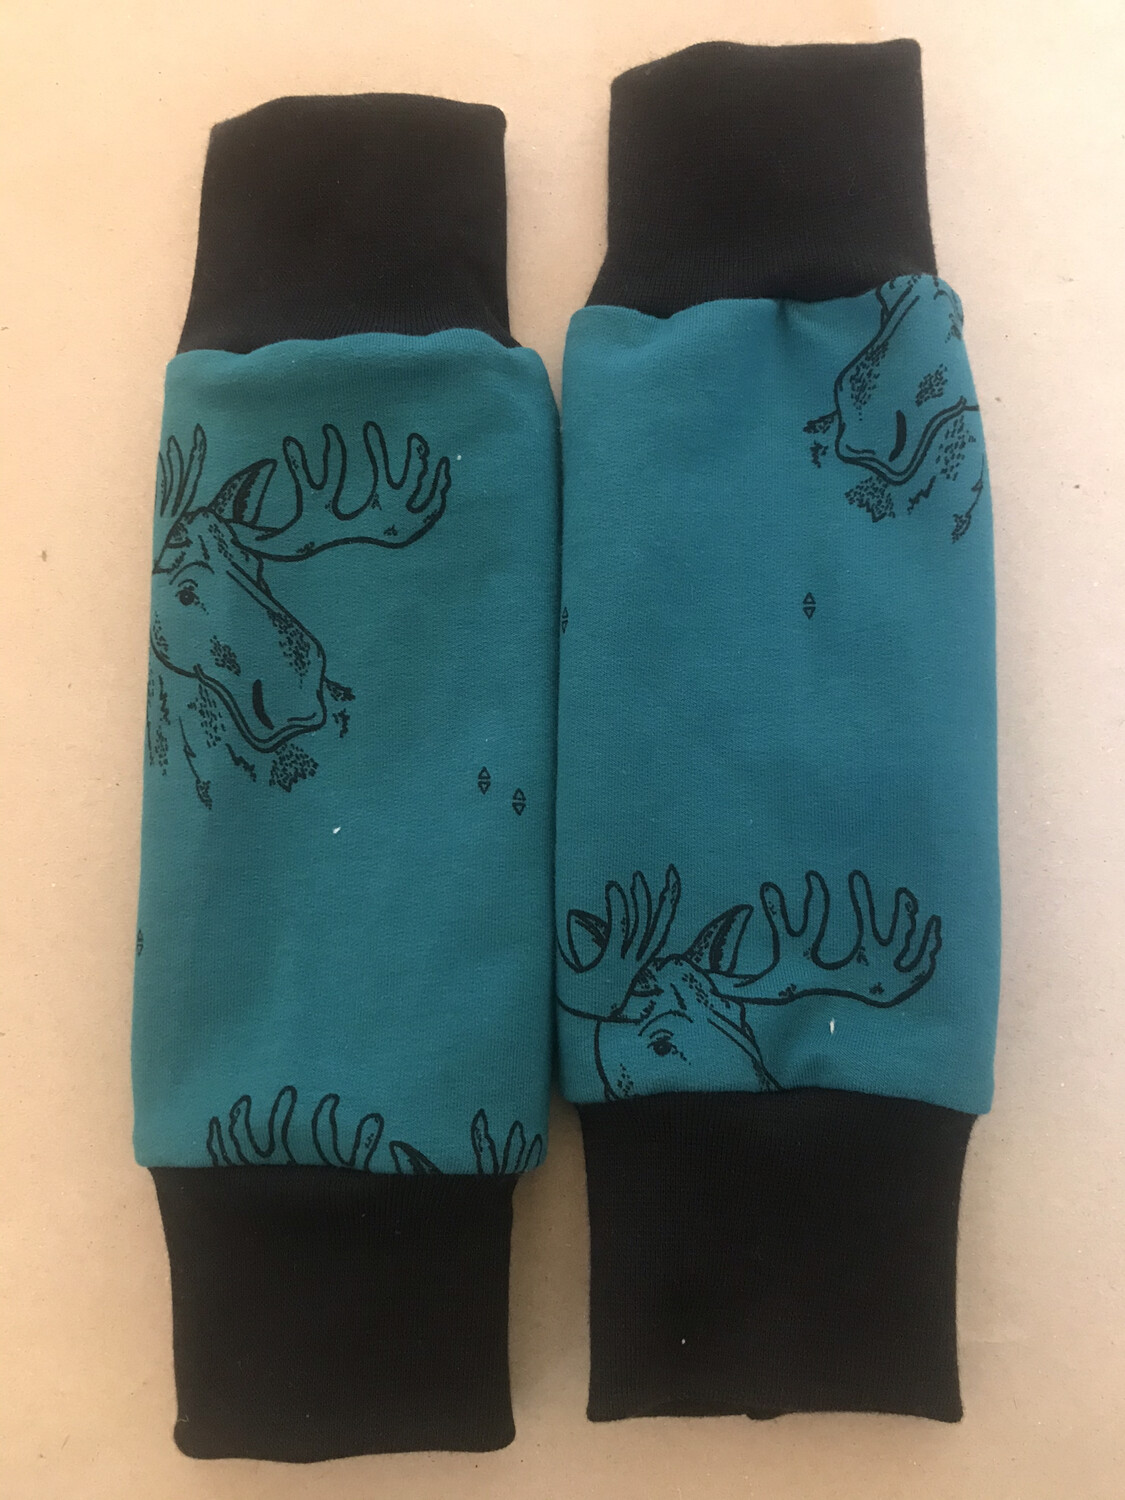 Teal Moose Baby Leg Warmers - alternative cuffs available